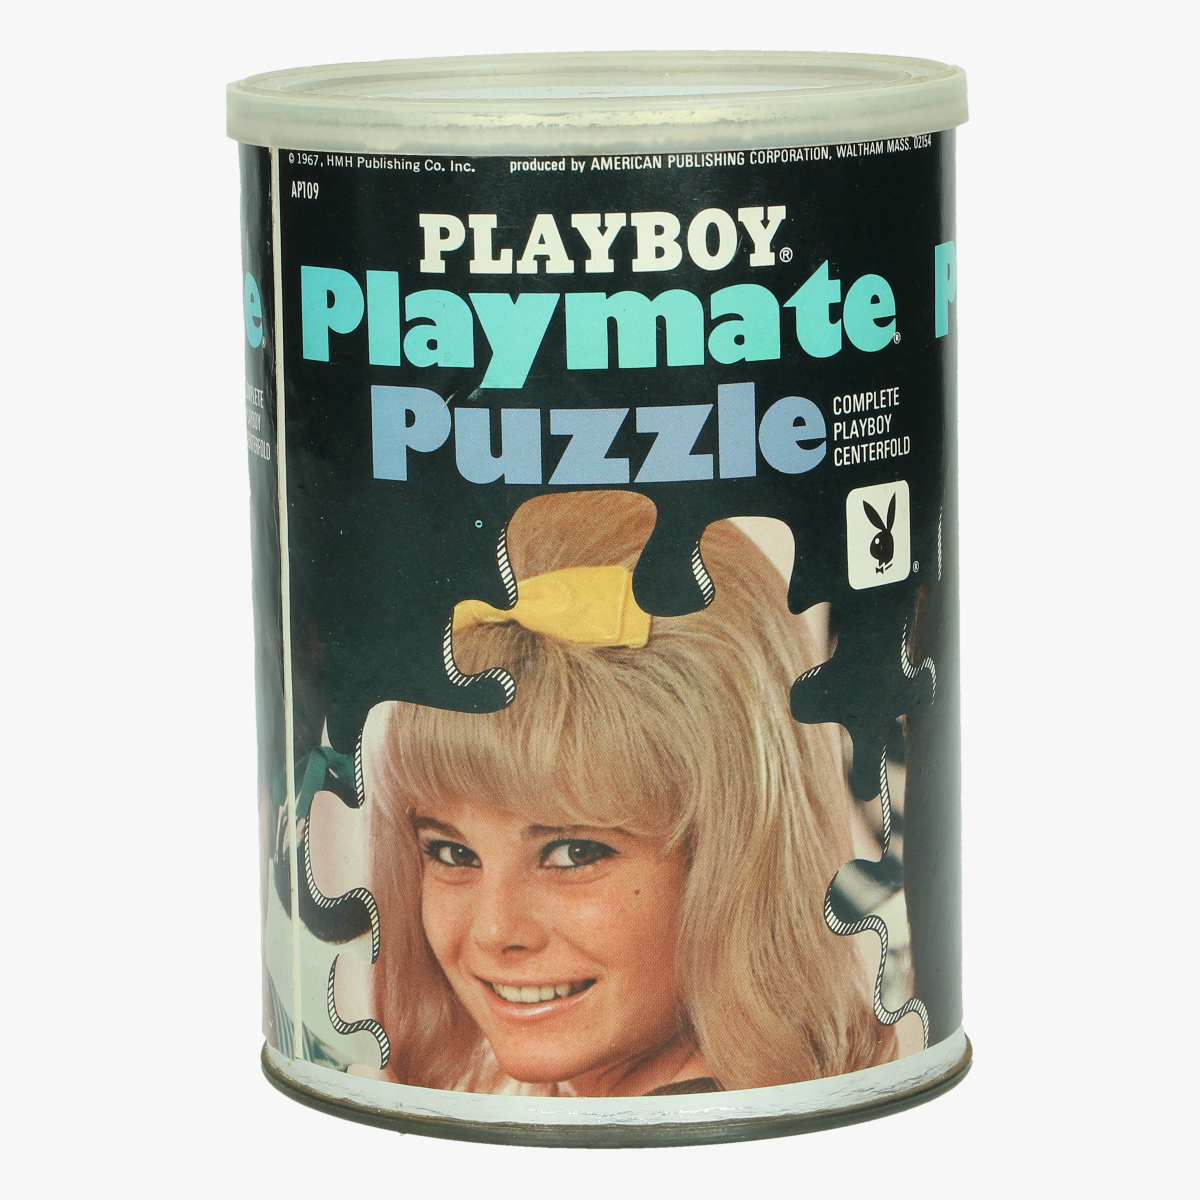 Afbeeldingen van vintage playboy puzzel miss november 1967 paige young produced by american publishing corporation, waltham mass